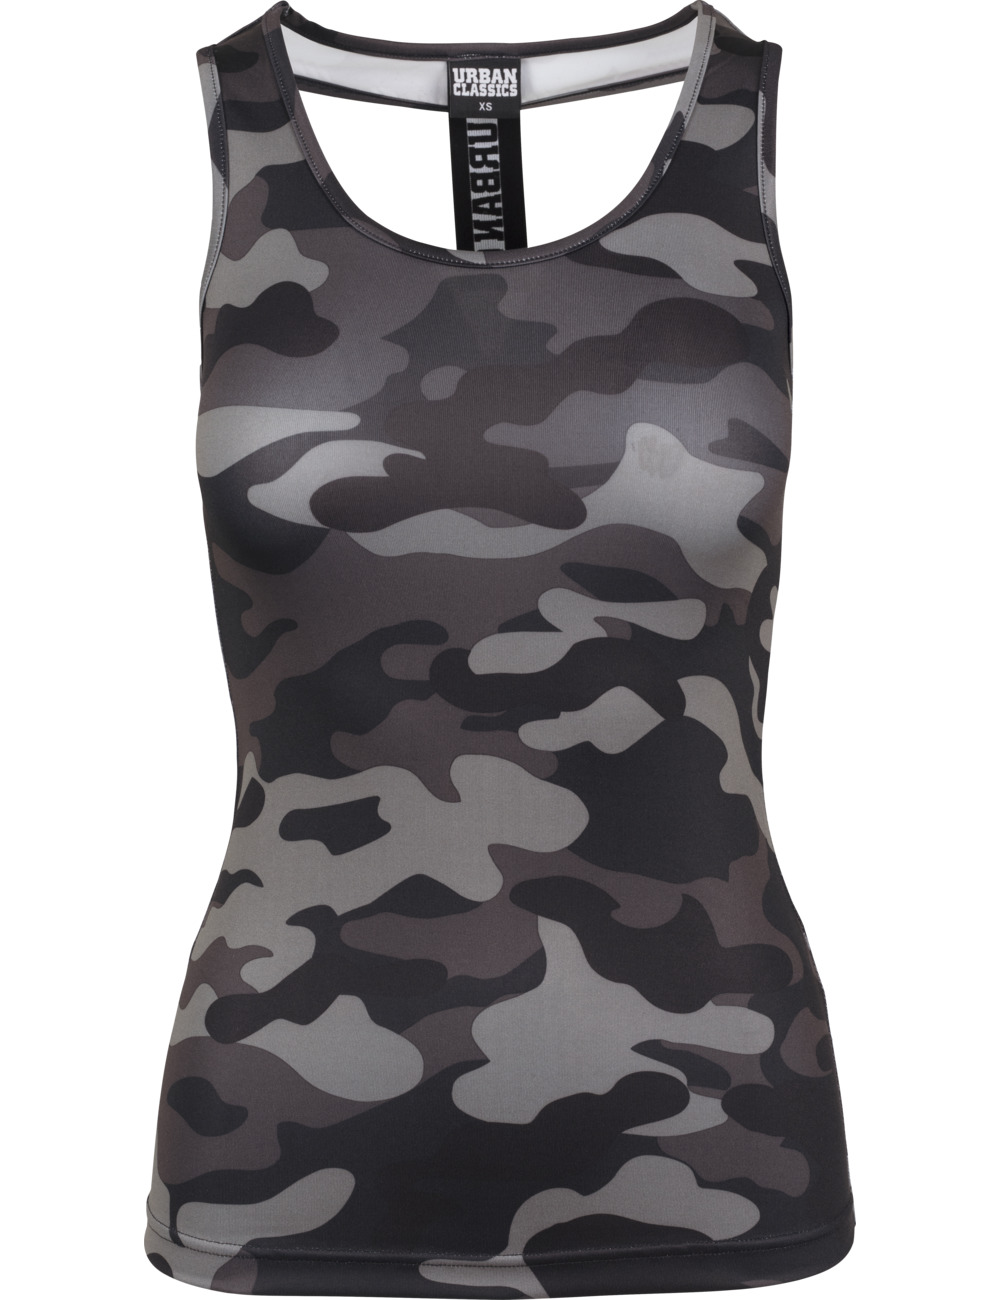 urban-classics-ladies-camo-top